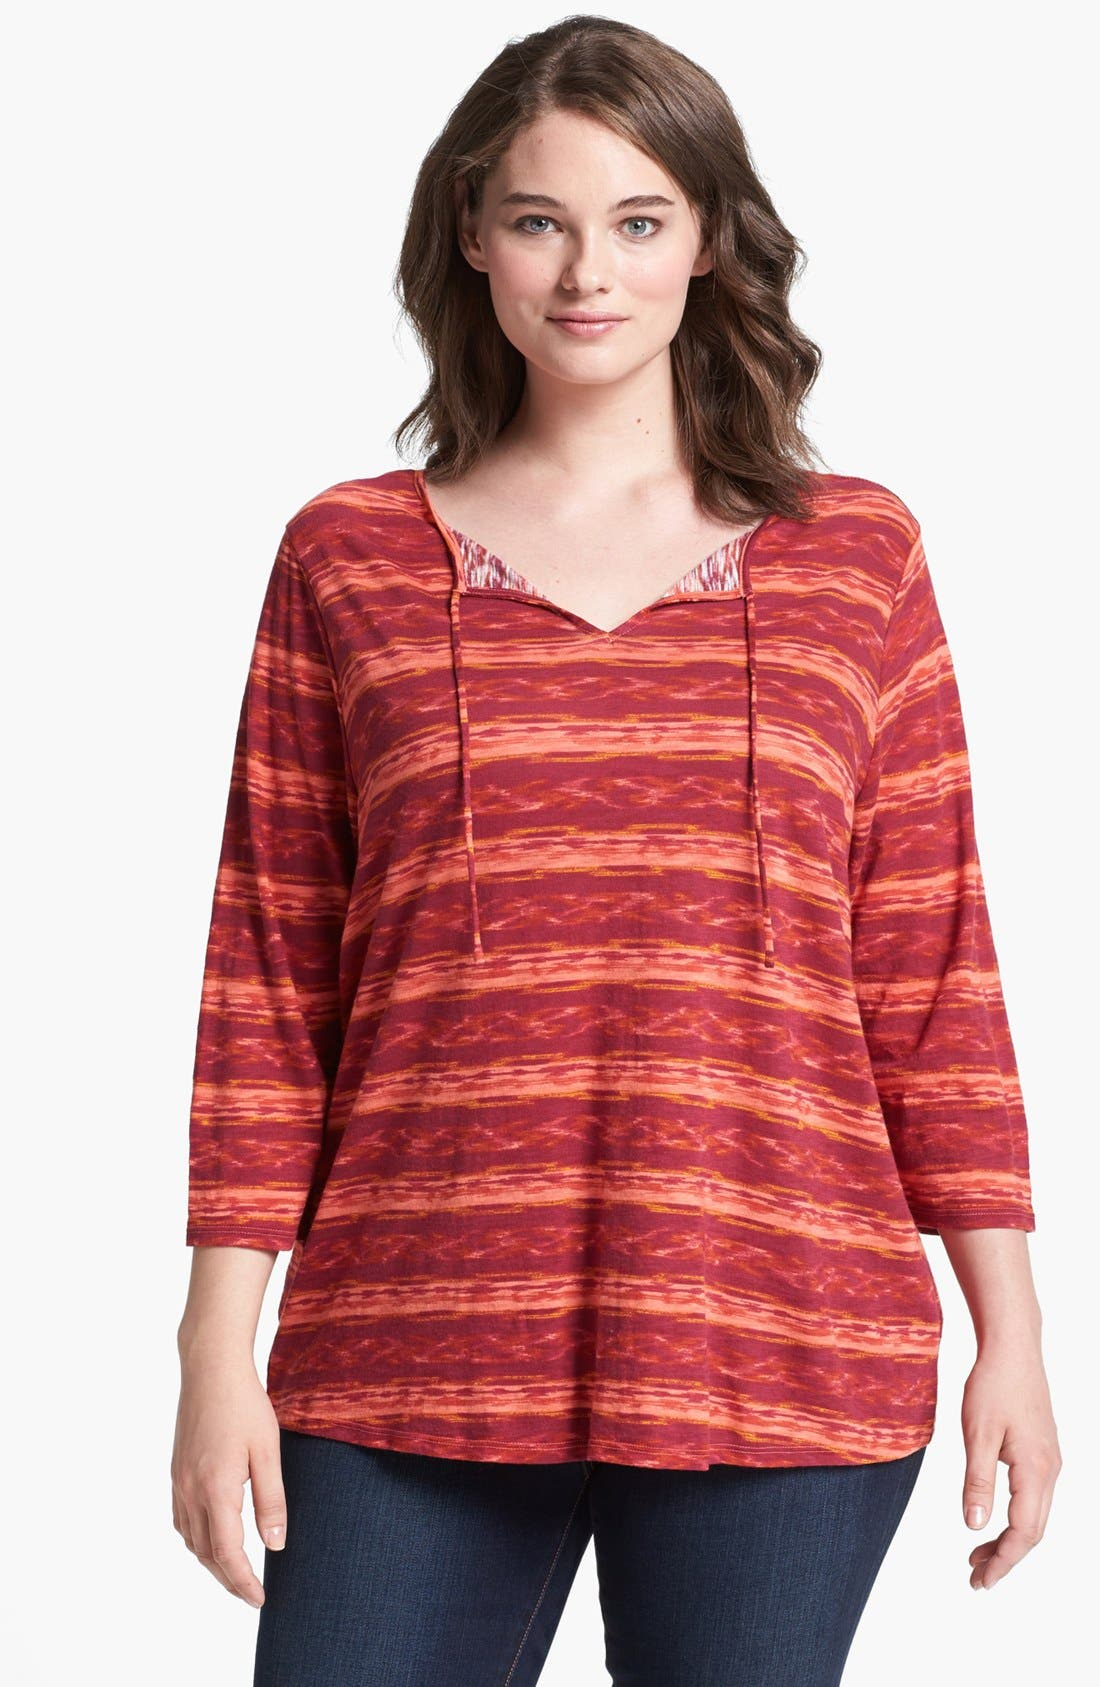 Alternate Image 1 Selected - Lucky Brand 'Amber' Stripe Top (Plus Size)